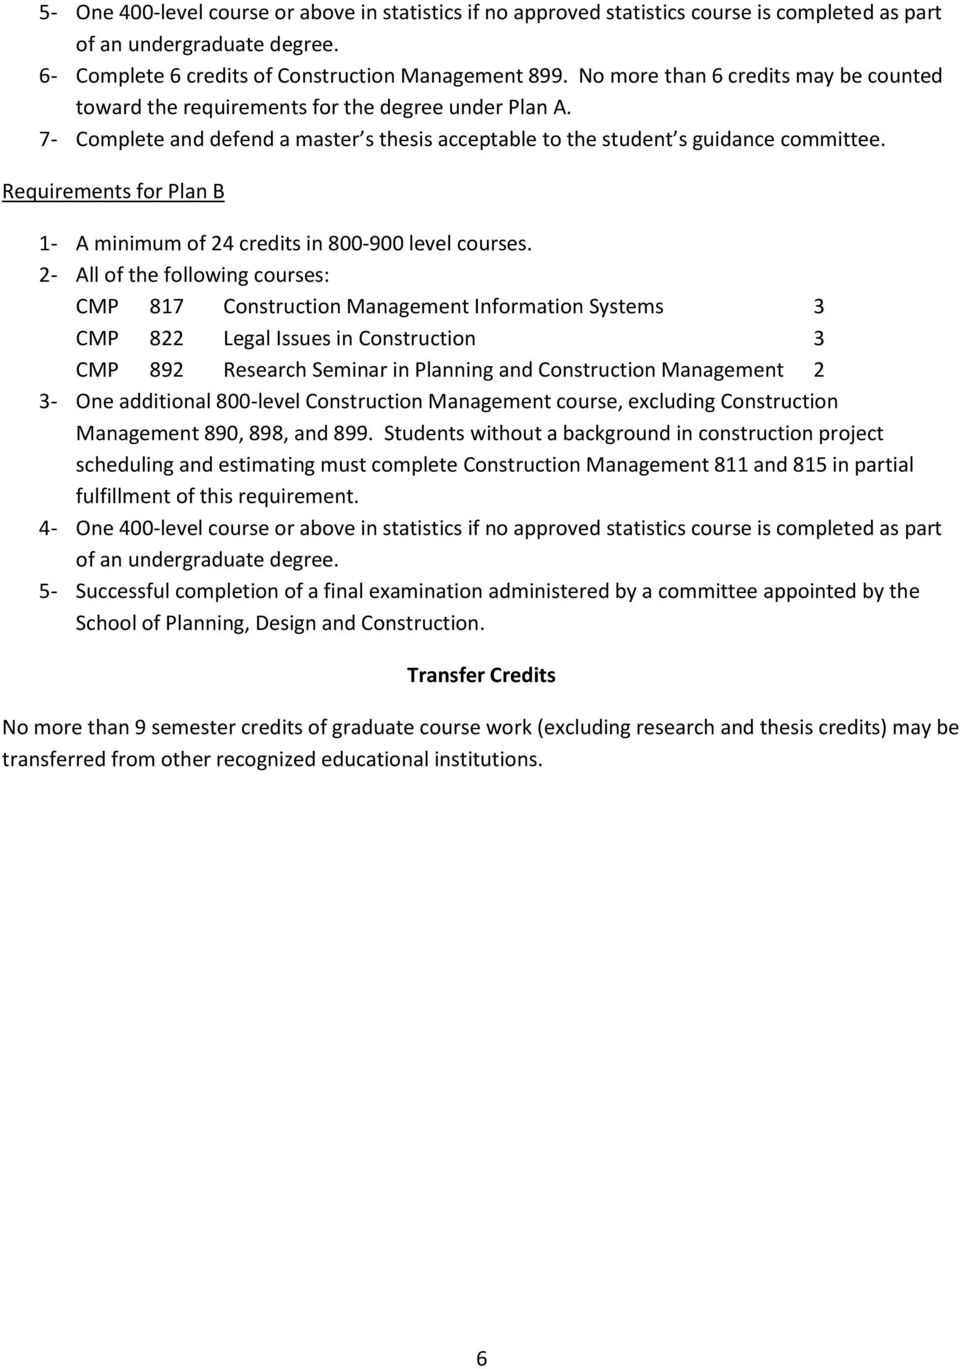 Requirements for Plan B 1- A minimum of 24 credits in 800-900 level courses.